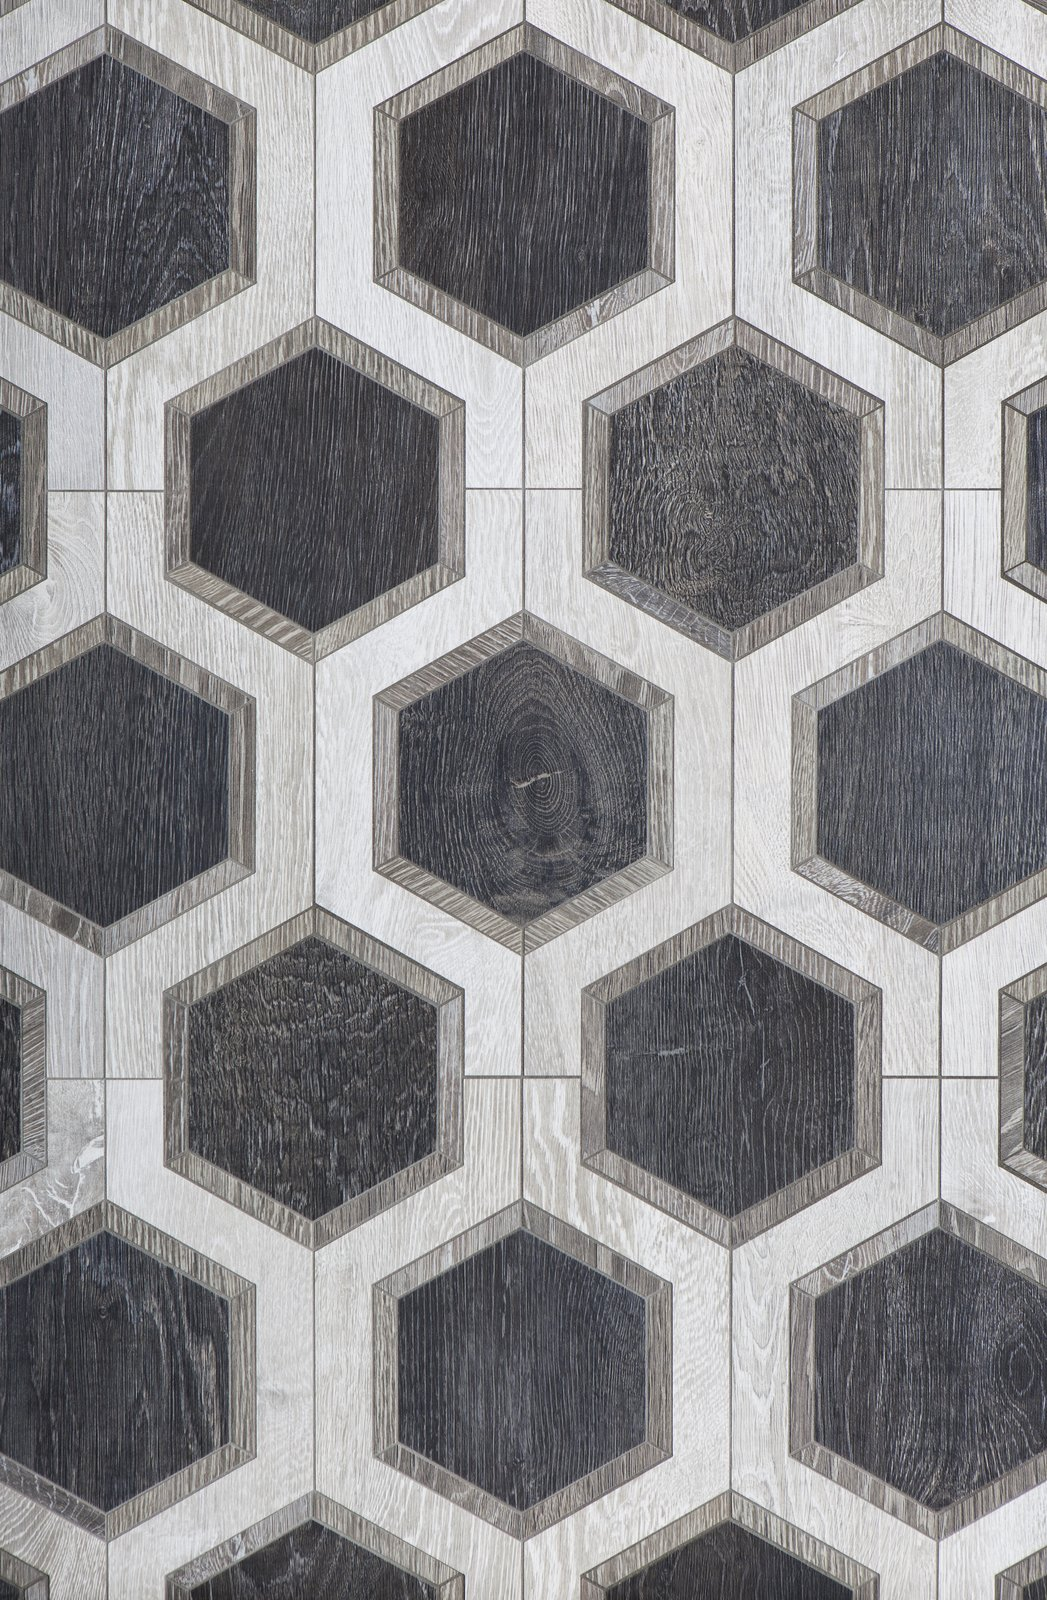 From Walker Zanger, Sterling Row Hexagon, a wood-finish ceramic tile.  New Kitchen and Bath Surfaces We Love by Erika Heet